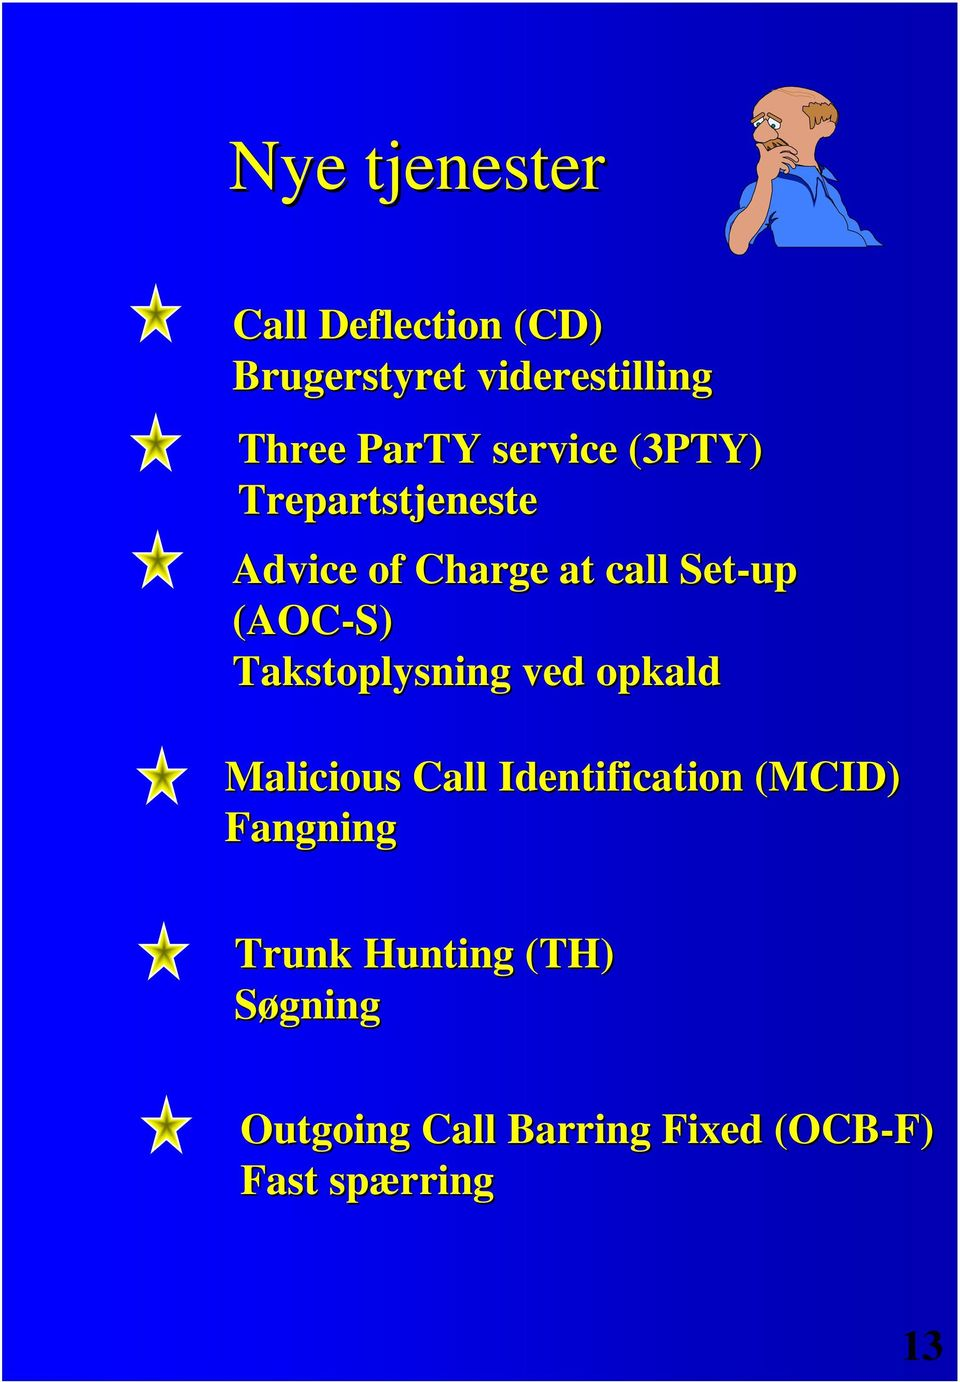 Takstoplysning ved opkald Malicious Call Identification (MCID) Fangning